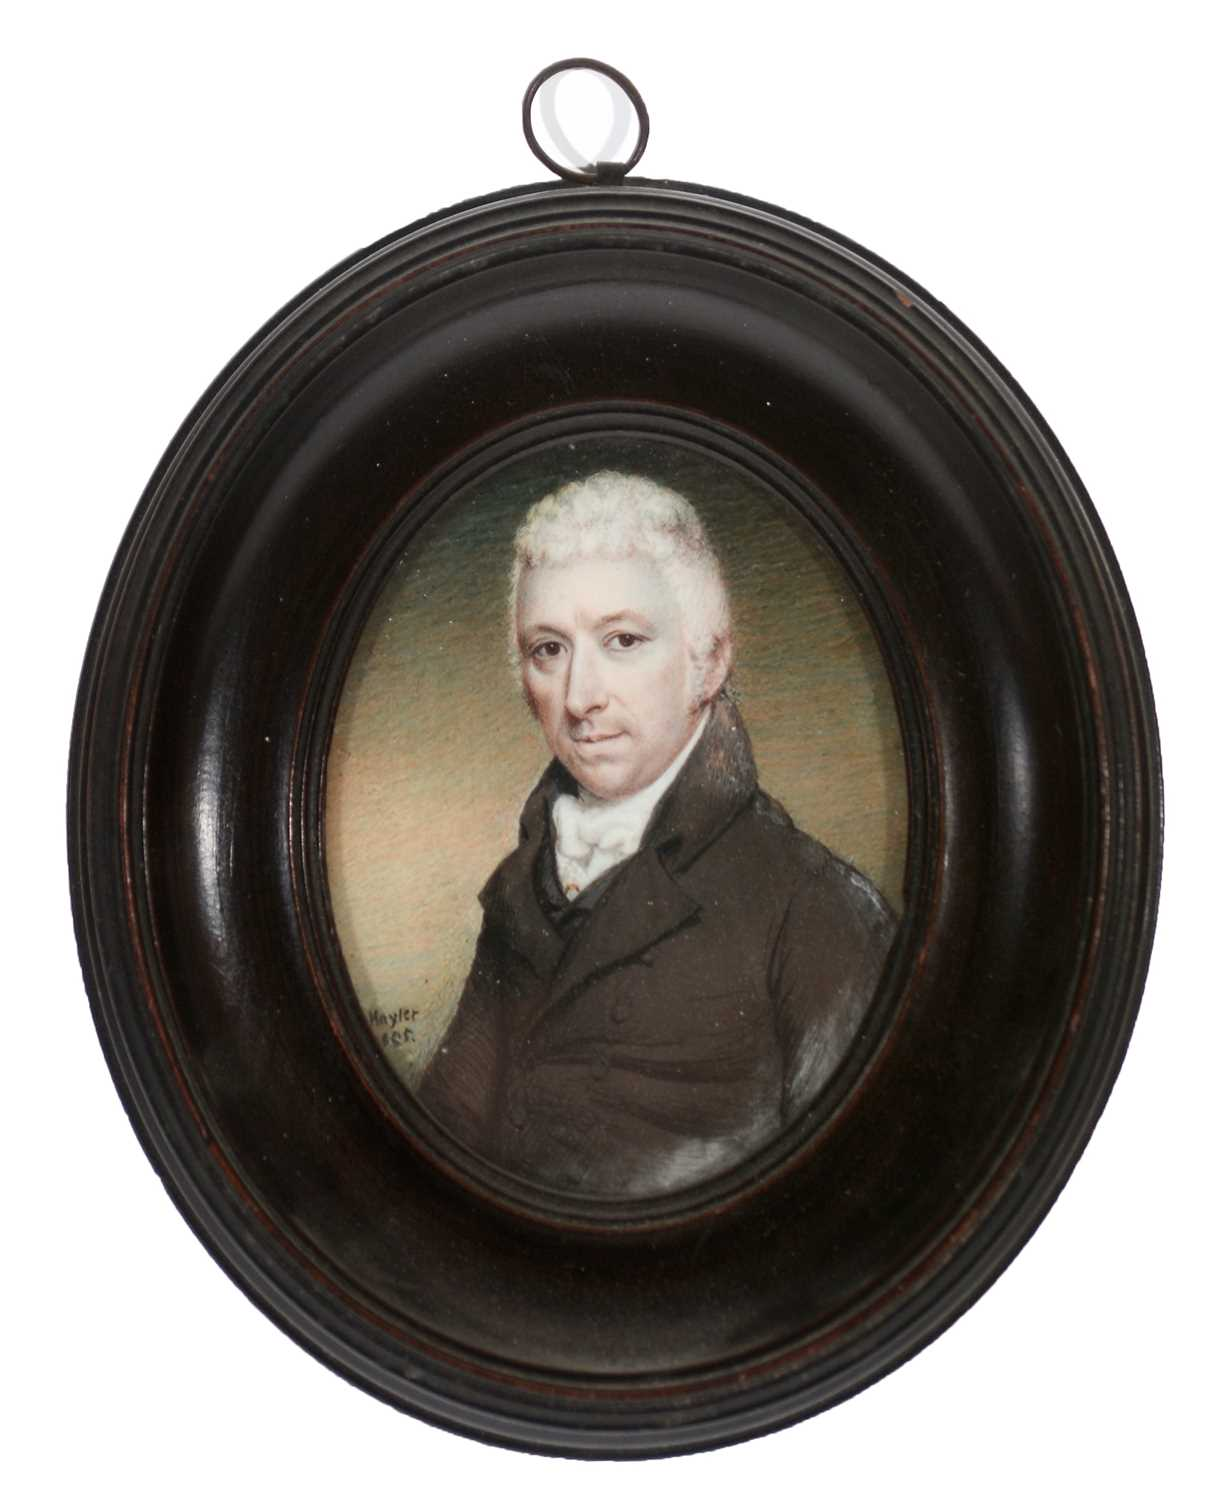 Lot 334 - Attributed to Charles Hayter - miniature.